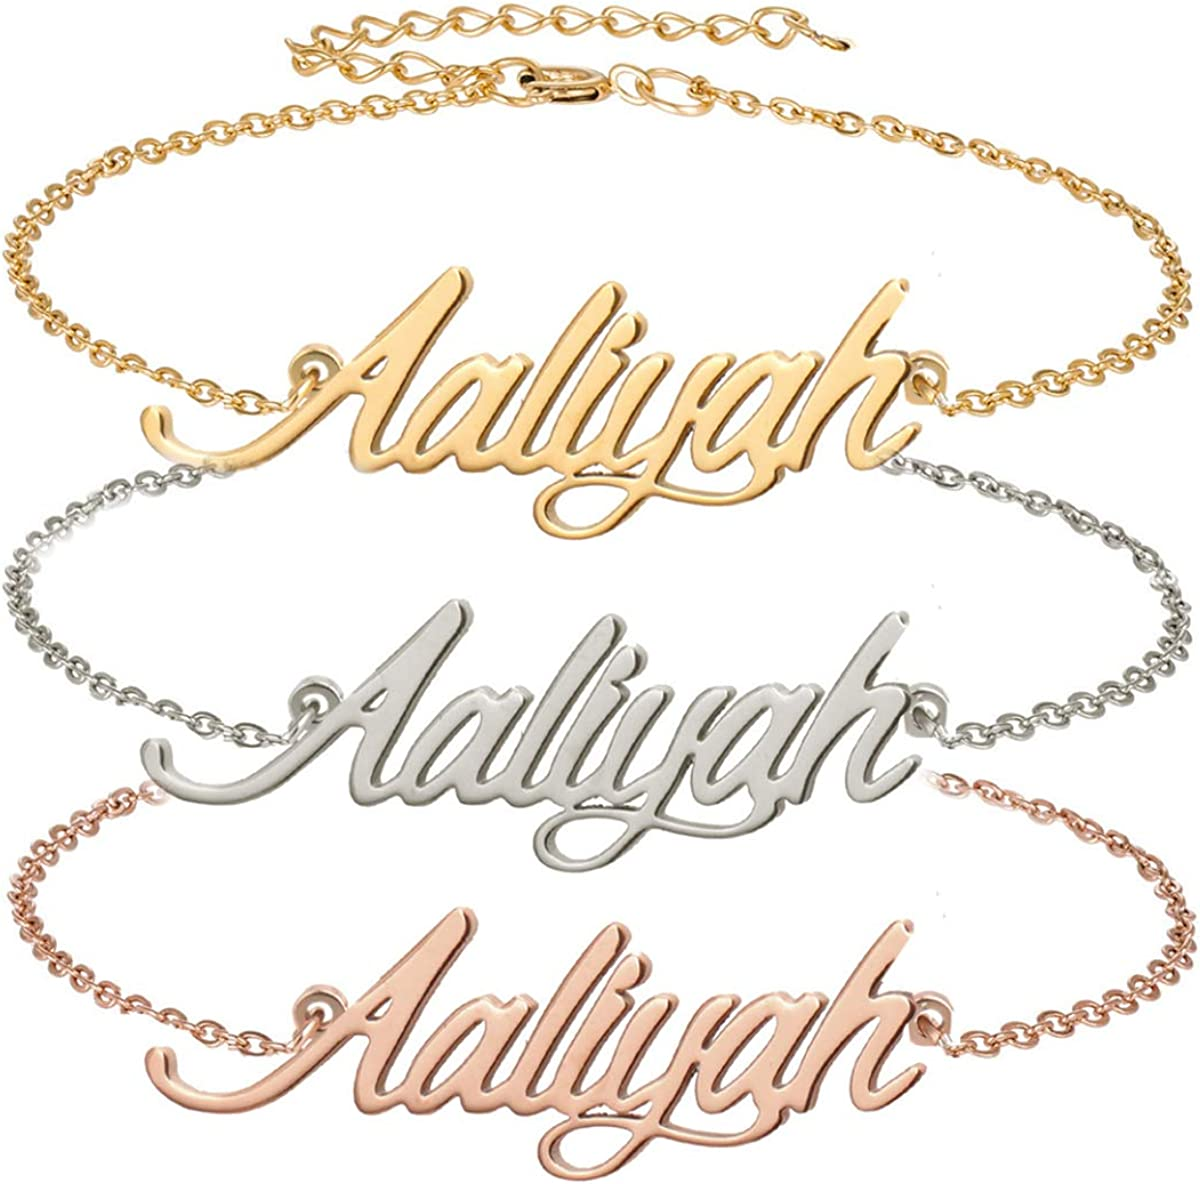 Aoloshow Stainless Steel Personalized Name Necklace Bracelet Jewelry Custom Made Any Names